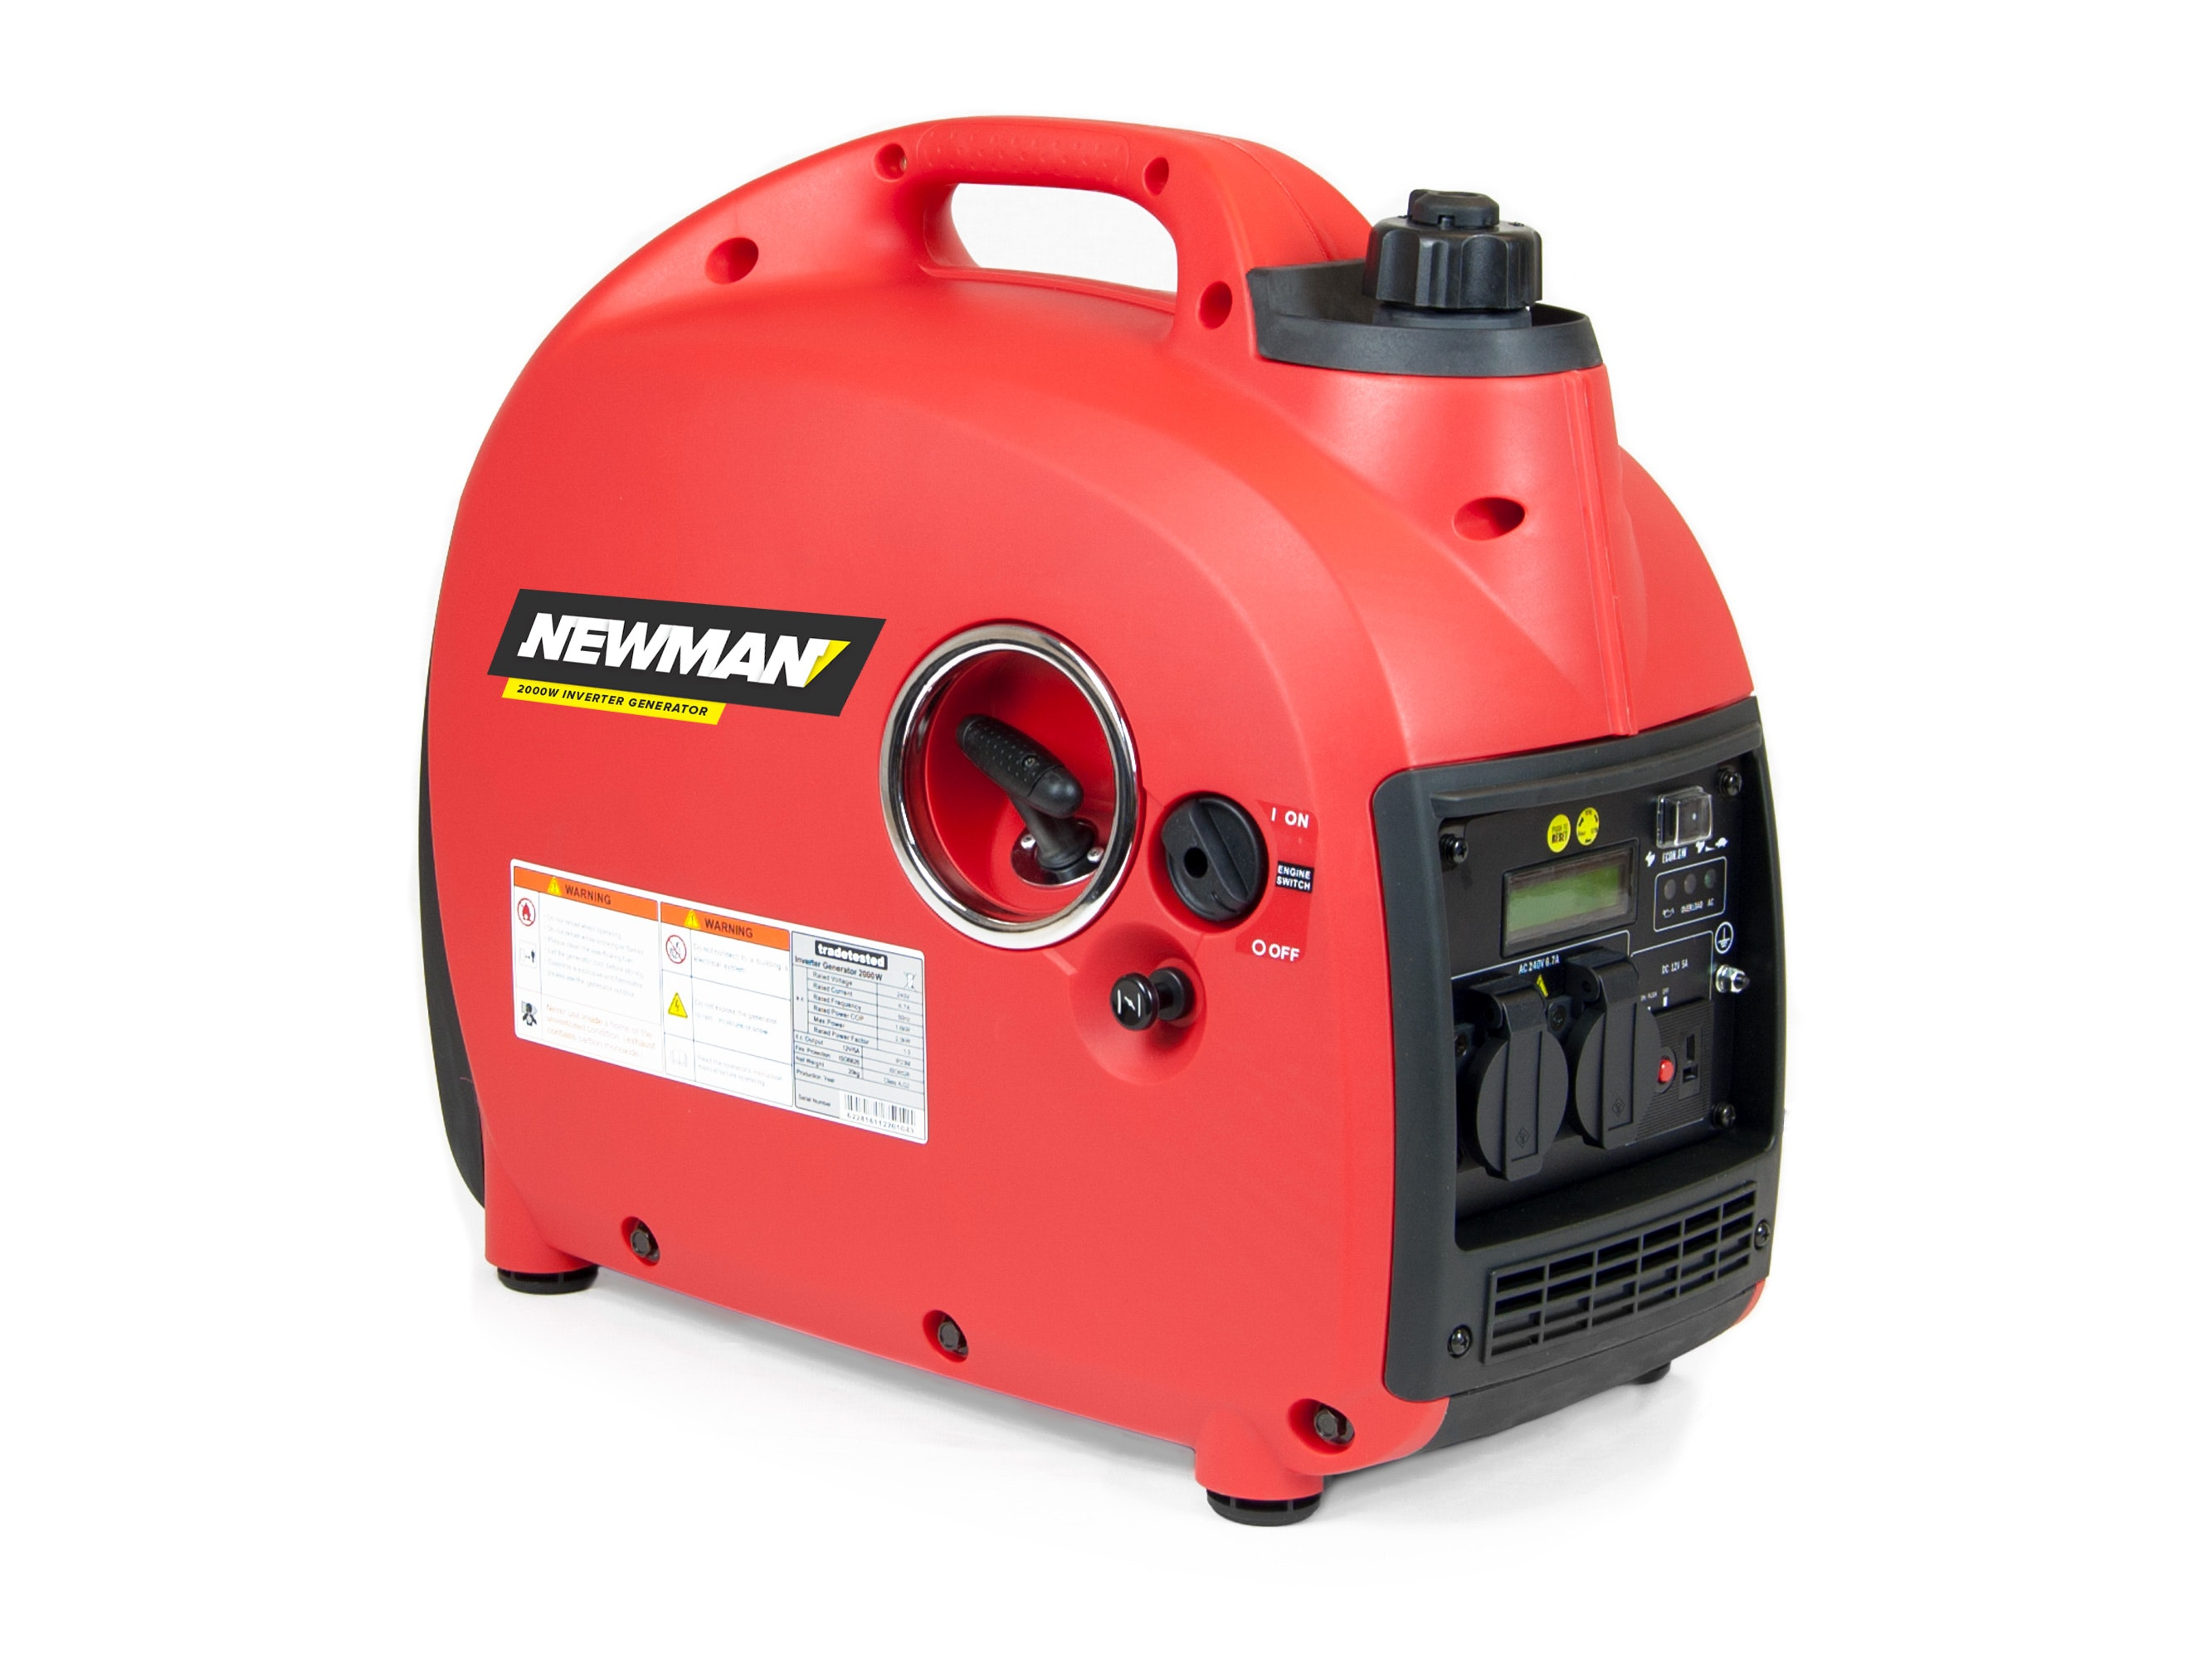 Newman Digital Inverter Generator 2000W